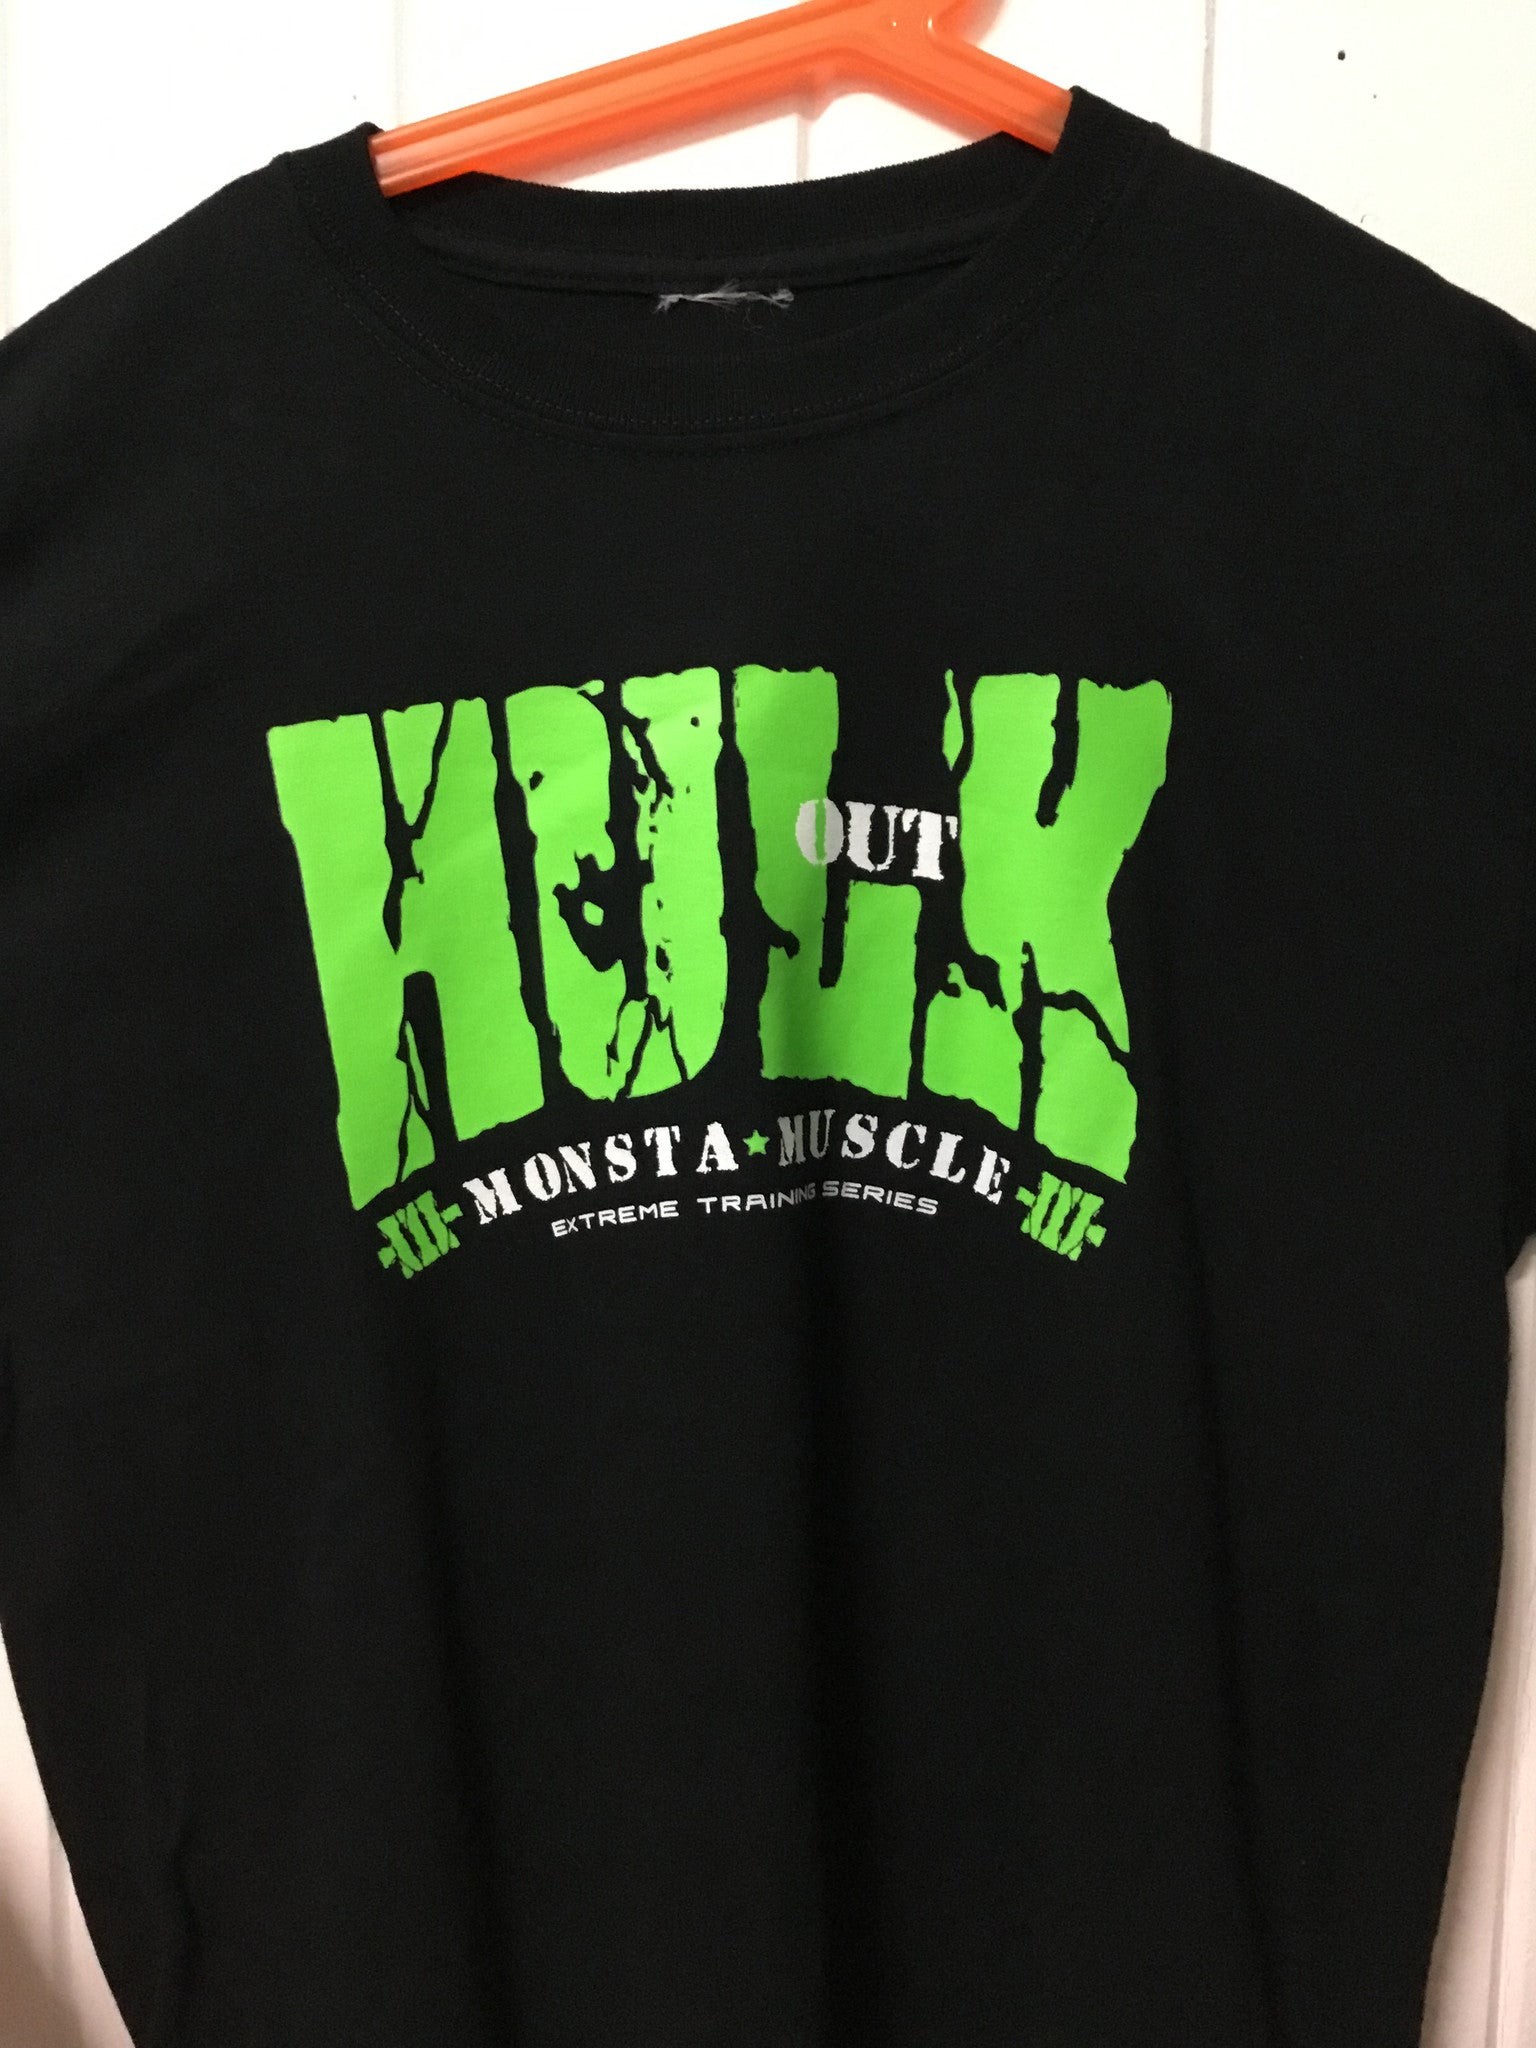 Tee: Children Wear Hulk Out - Monsta Clothing Australia